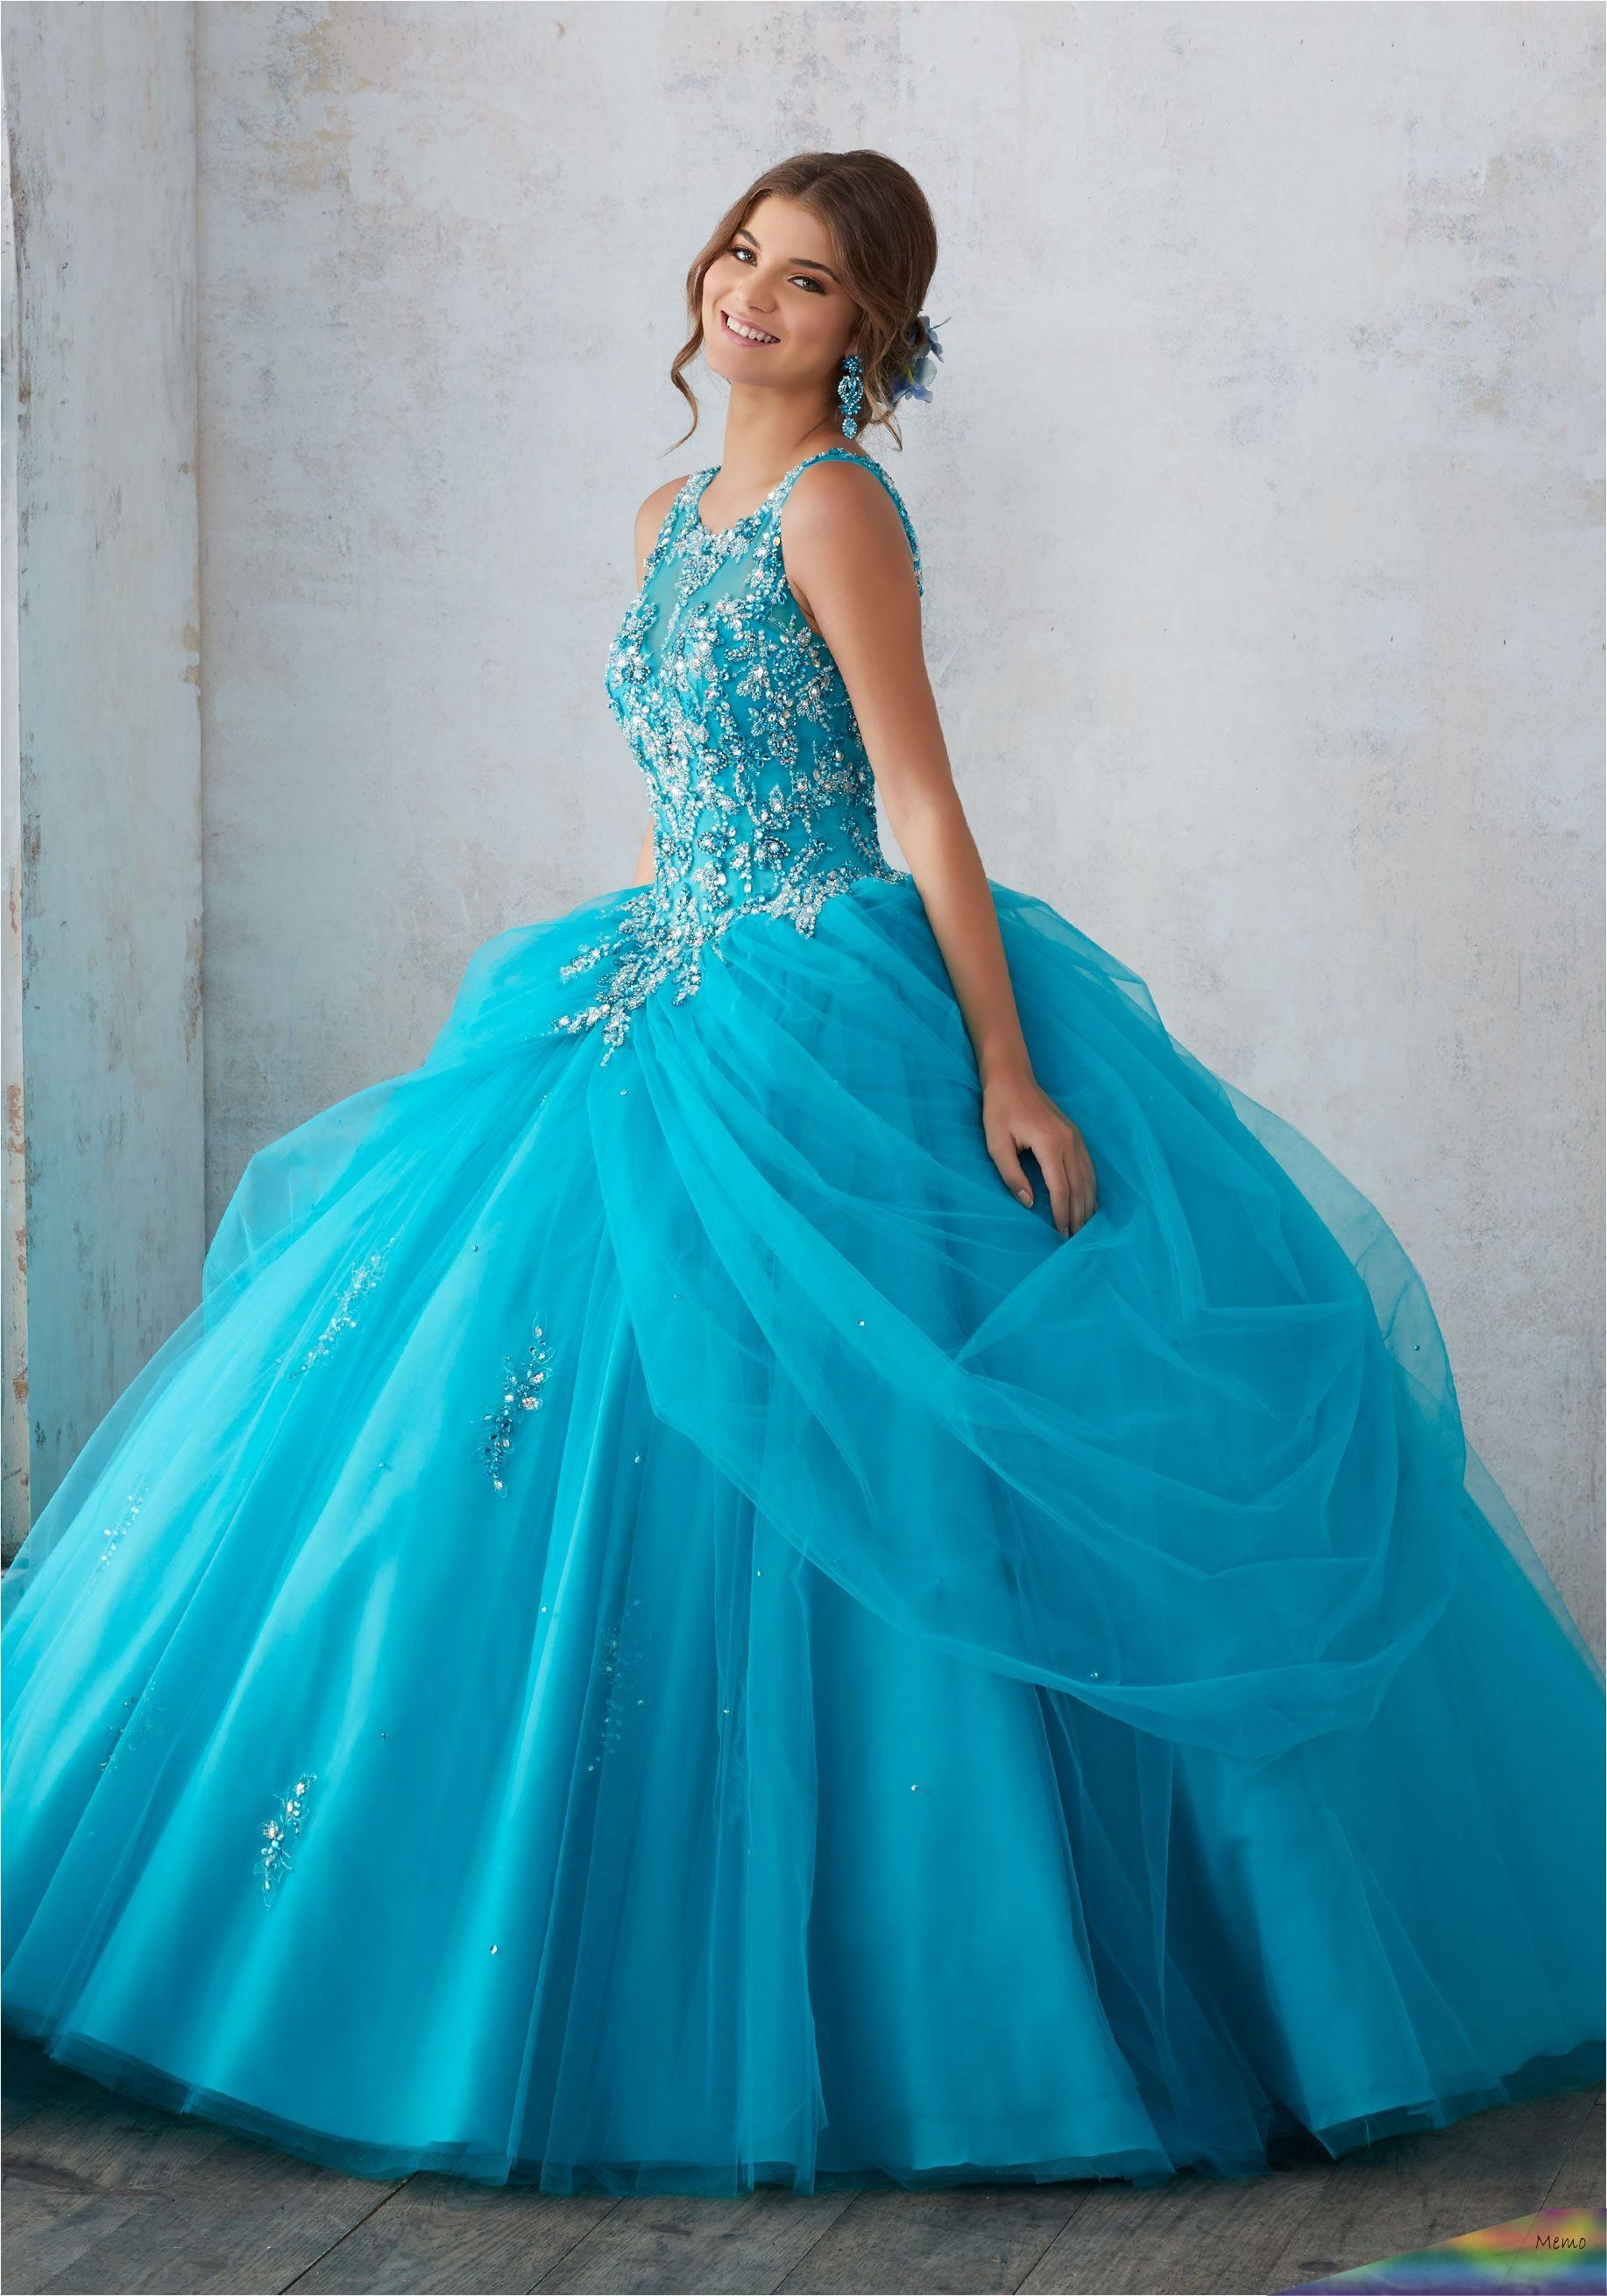 Apr 26, 2020 - Princess Perfect, This Tulle Quinceañera ...